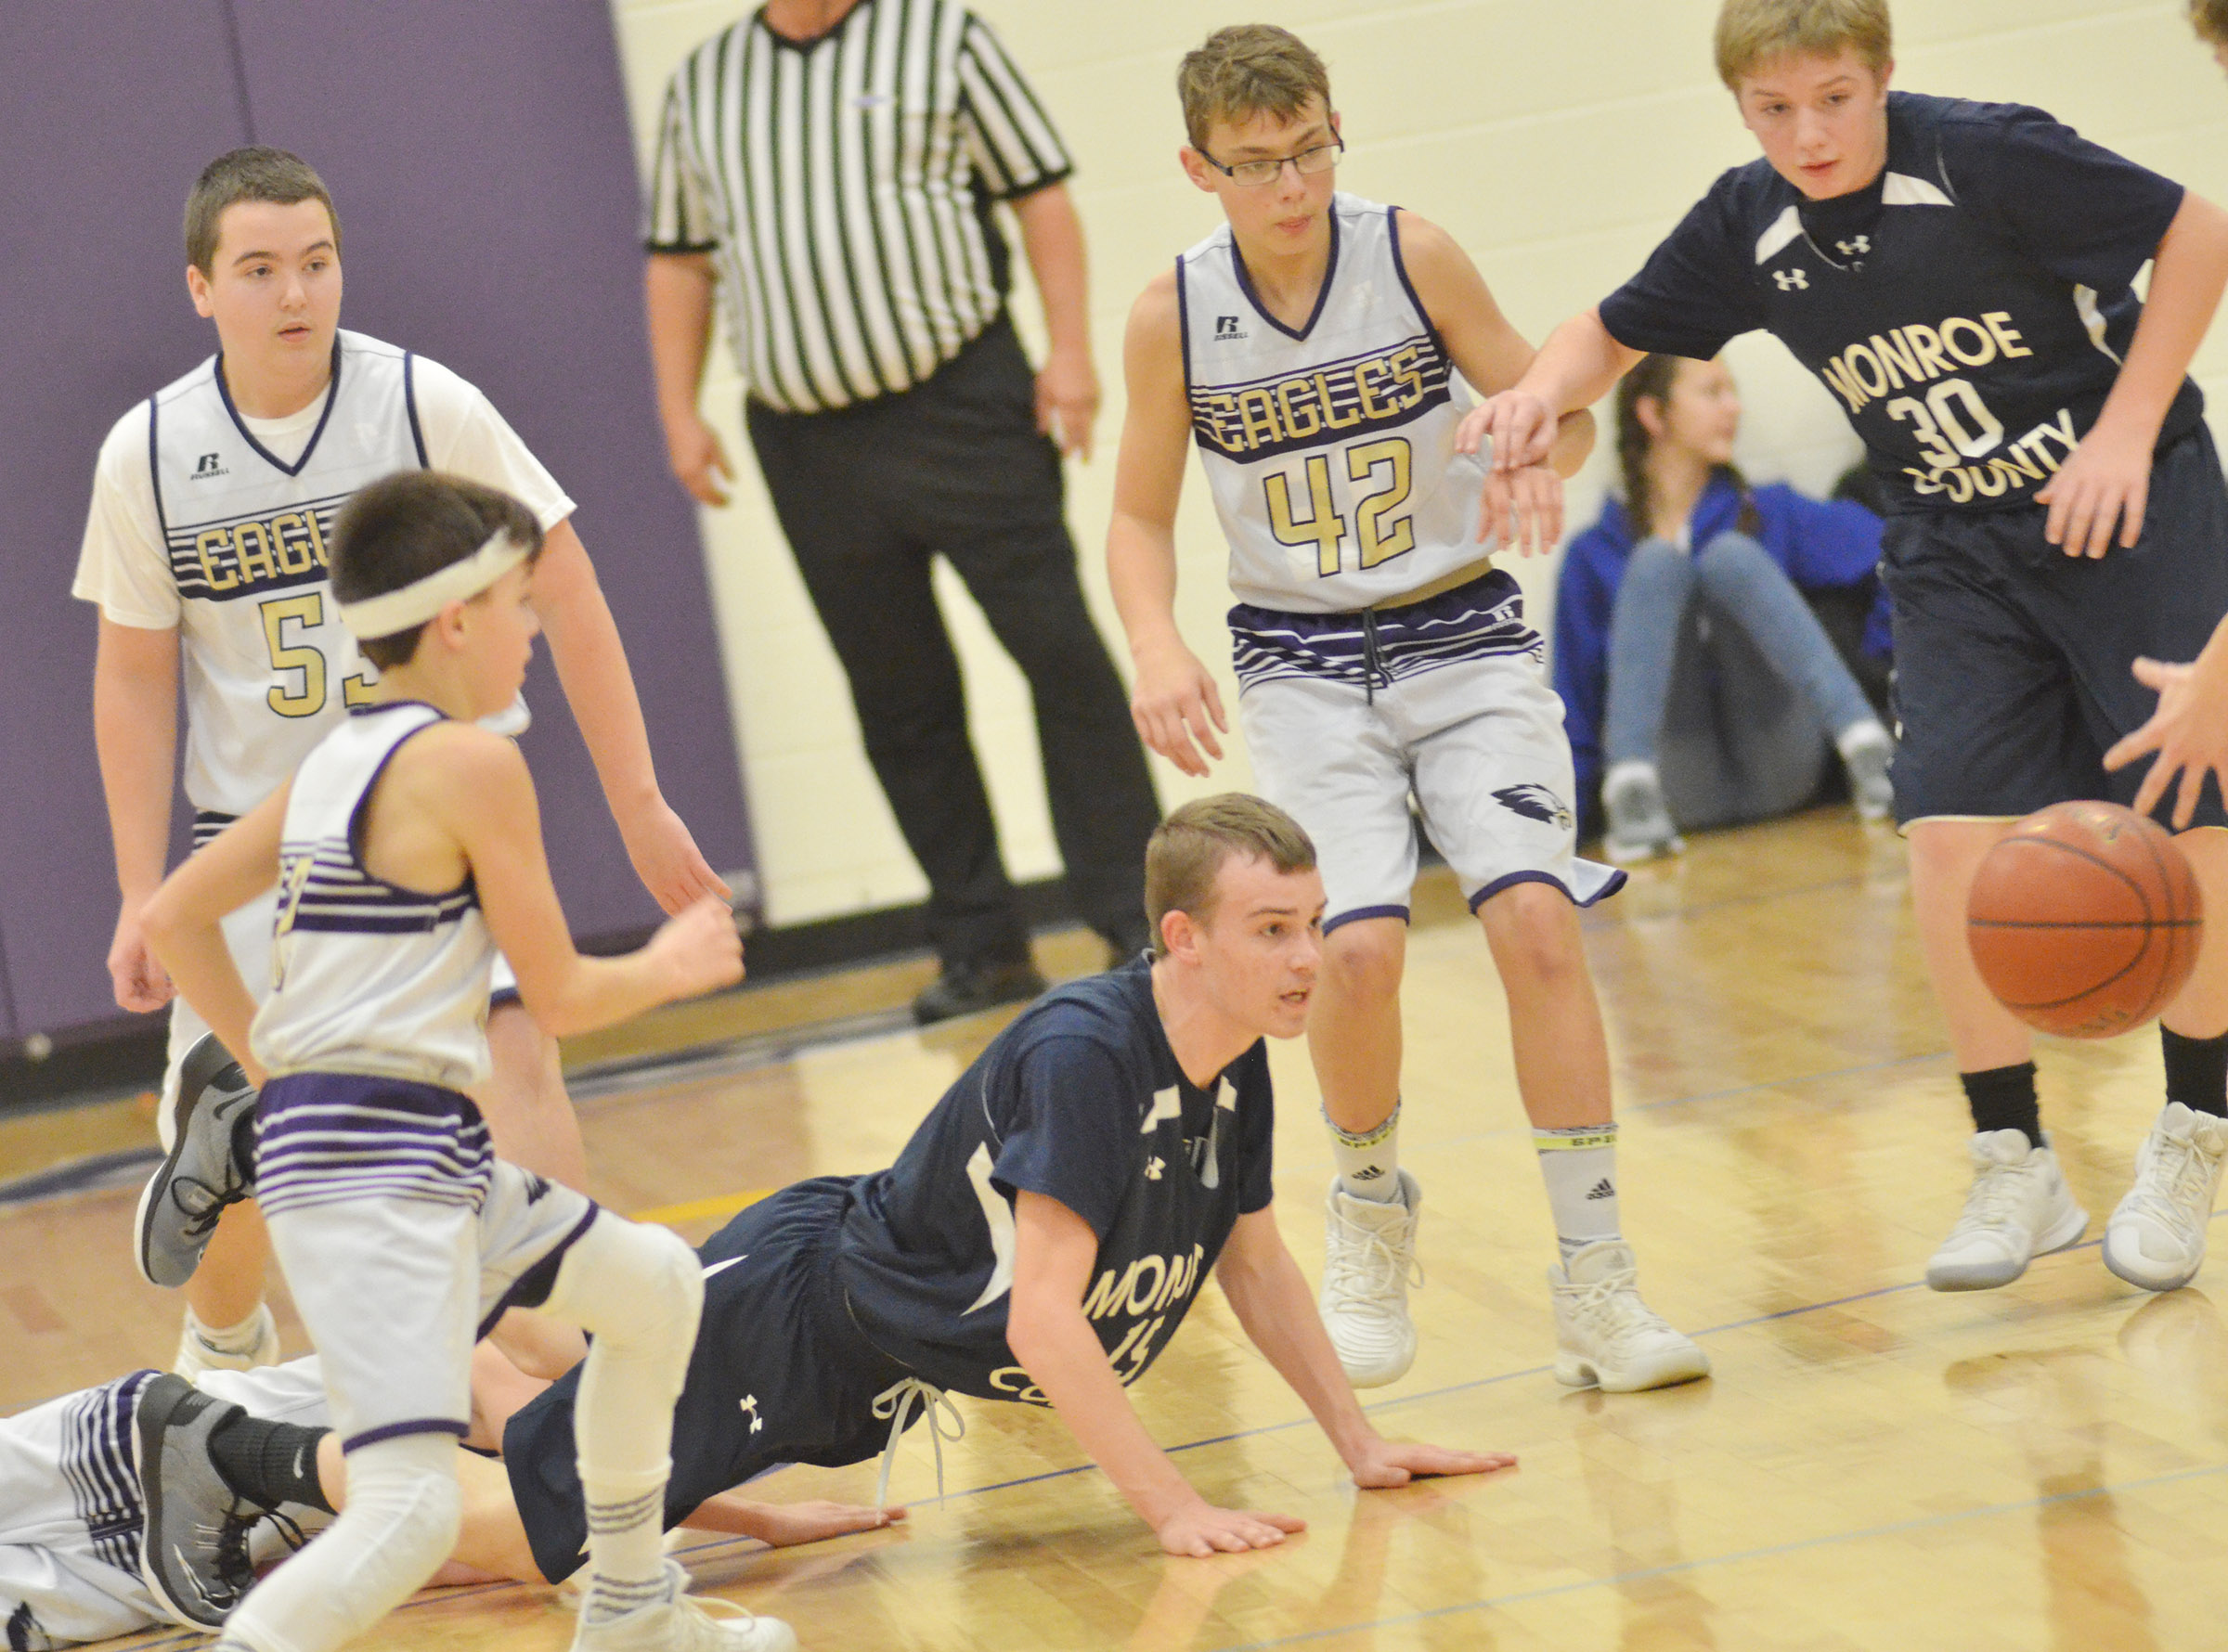 From left, CMS seventh-grader Chase Hord and eighth-graders Jack Sabo and Jarred Mays run for the ball.